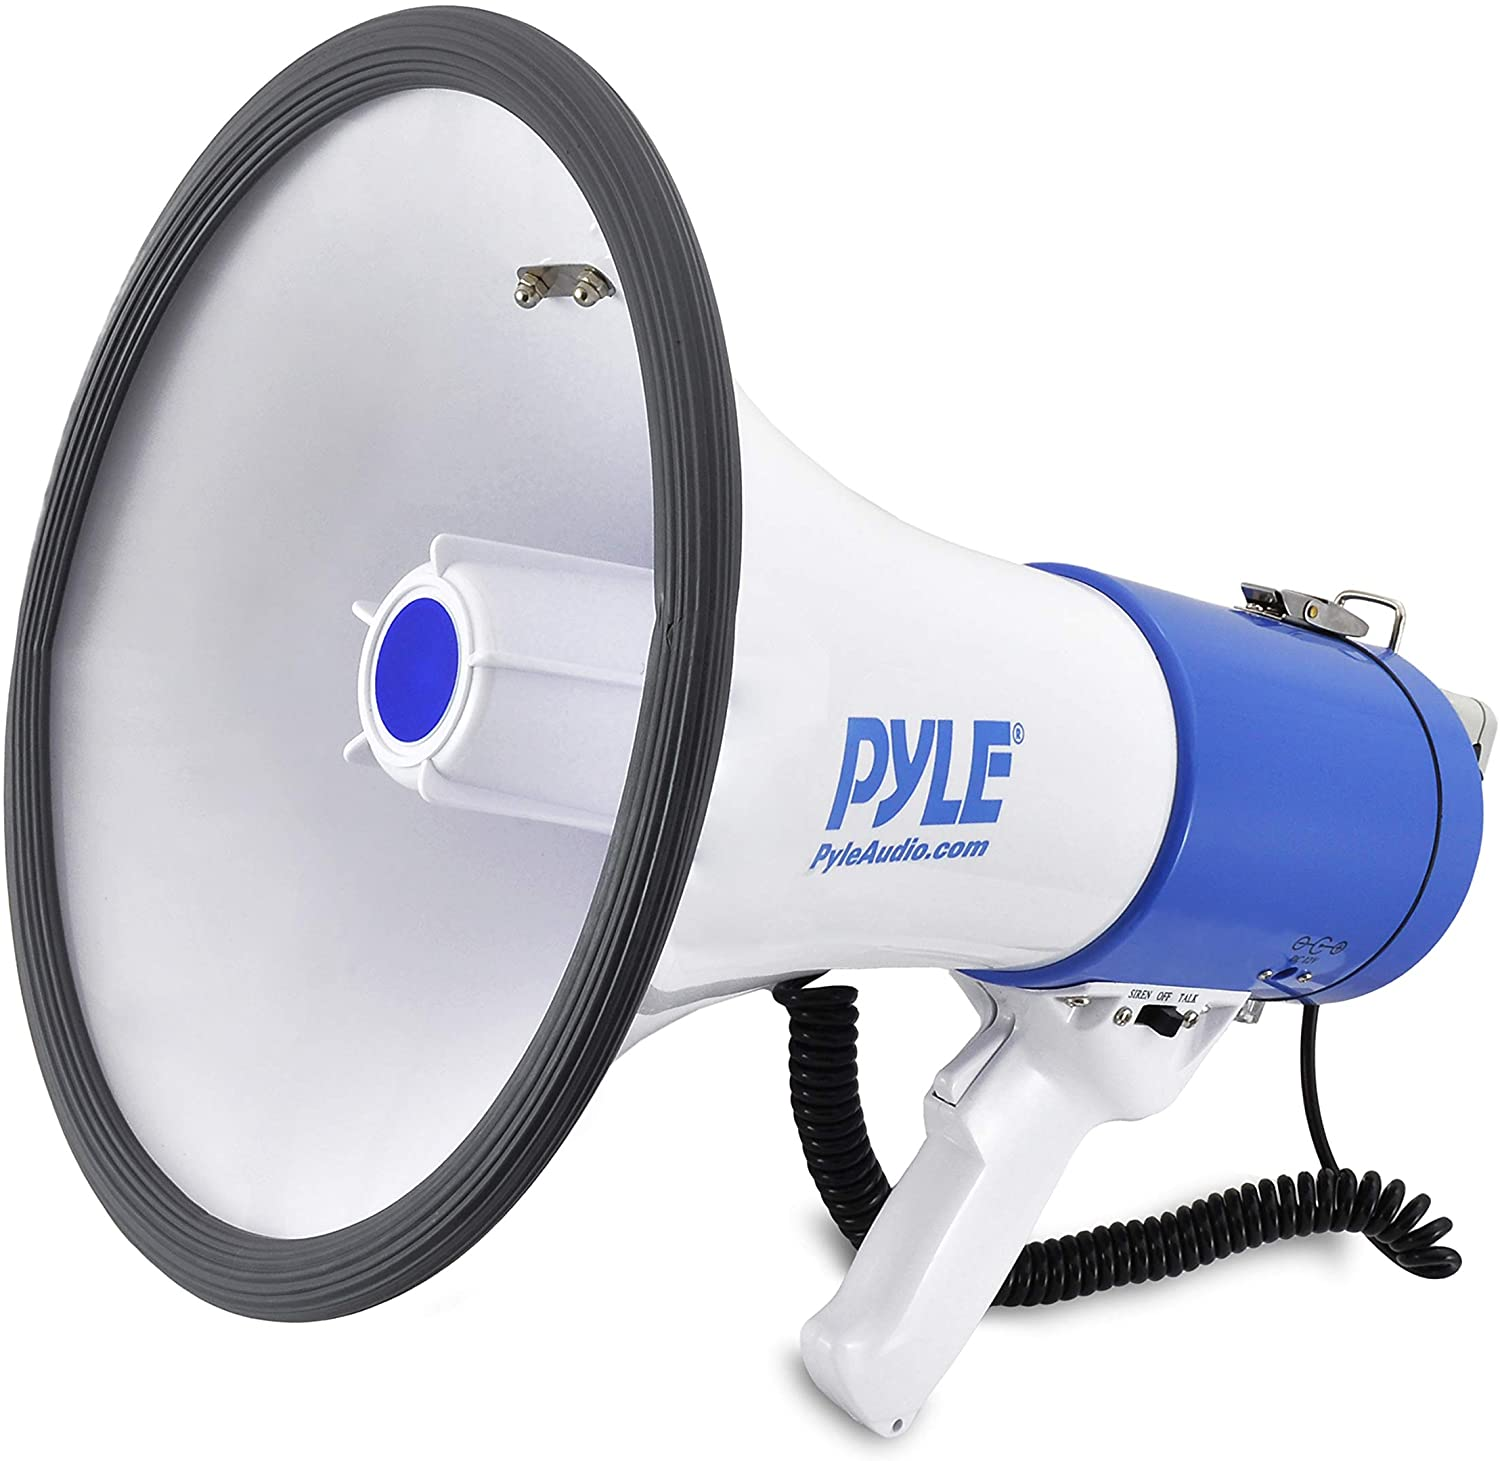 Pyle Megaphone Speaker PA Bullhorn with Built-in Siren - 50 Watts Adjustable Volume Control and 1200 Yard Range - Ideal for Football, Baseball, Basketball Cheerleading Fans & Coaches or for Safety Drills (PMP50)